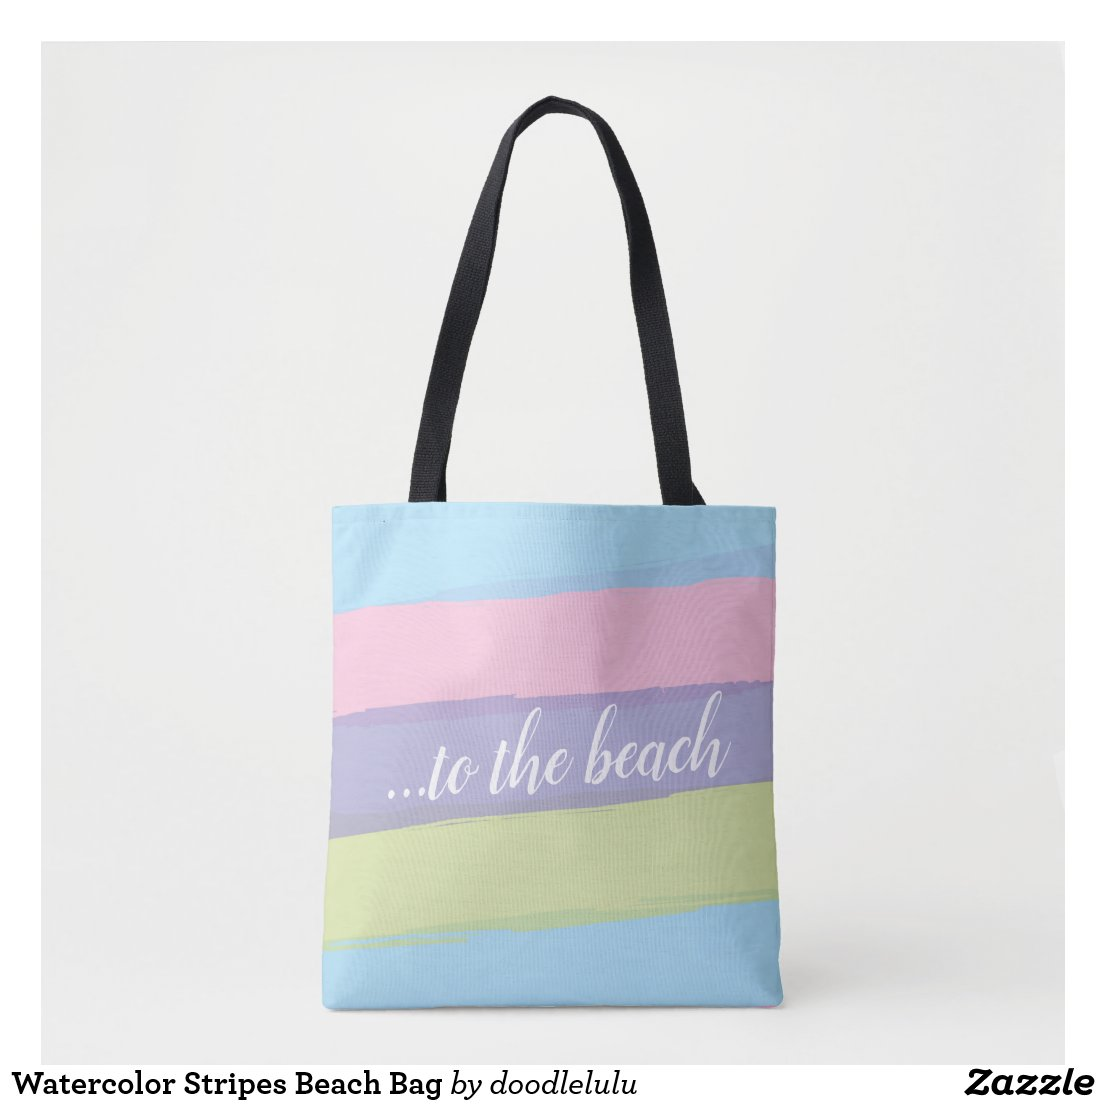 Watercolor Stripes Beach Bag